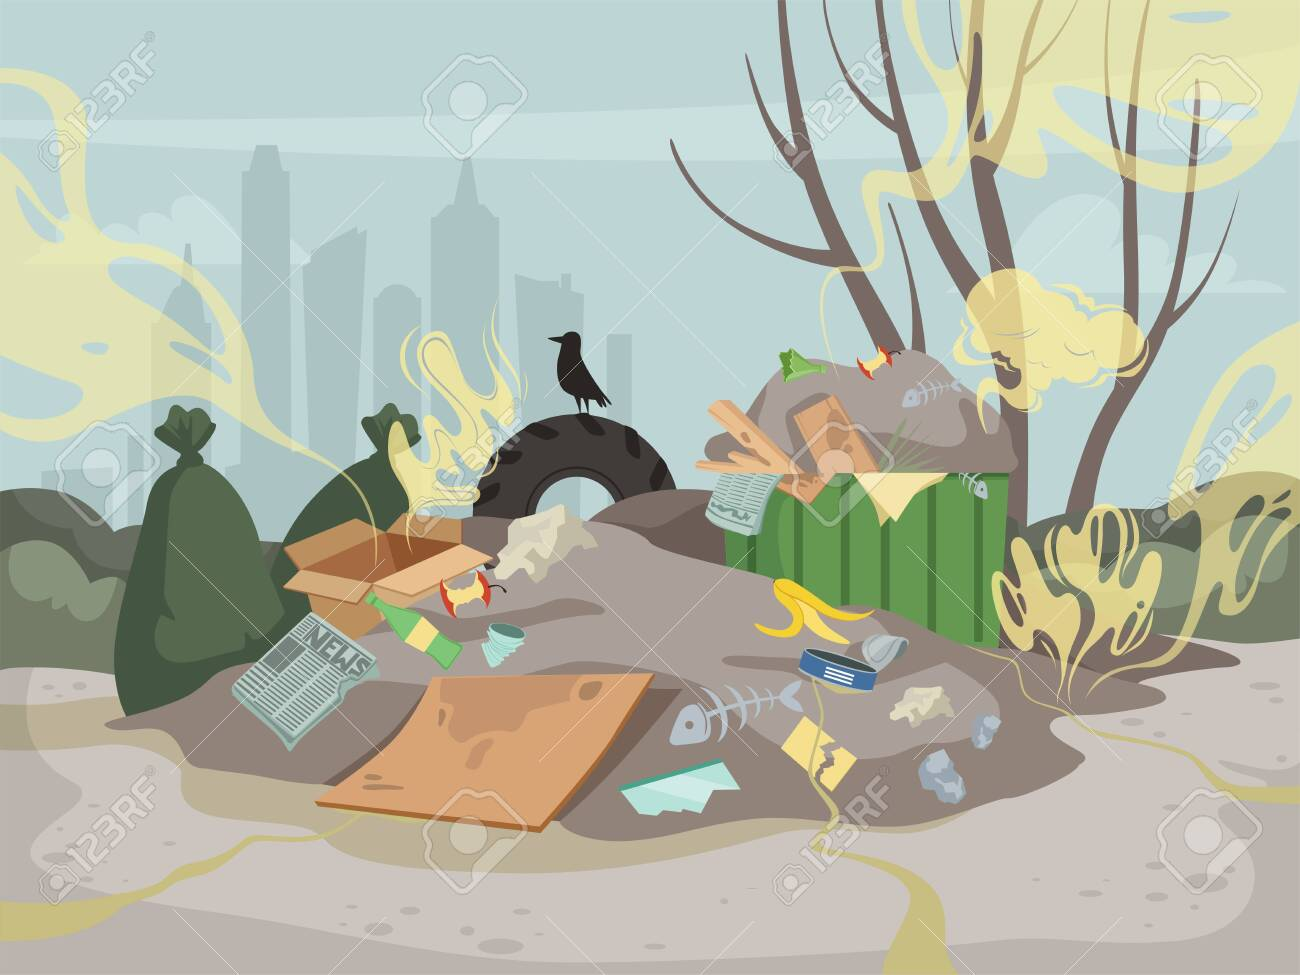 Waste smell. Toxic junk mountain garbage bad environment dump smell clouds vector background. Illustration landfill dirty problem, industry chaos rubbish - 134955487